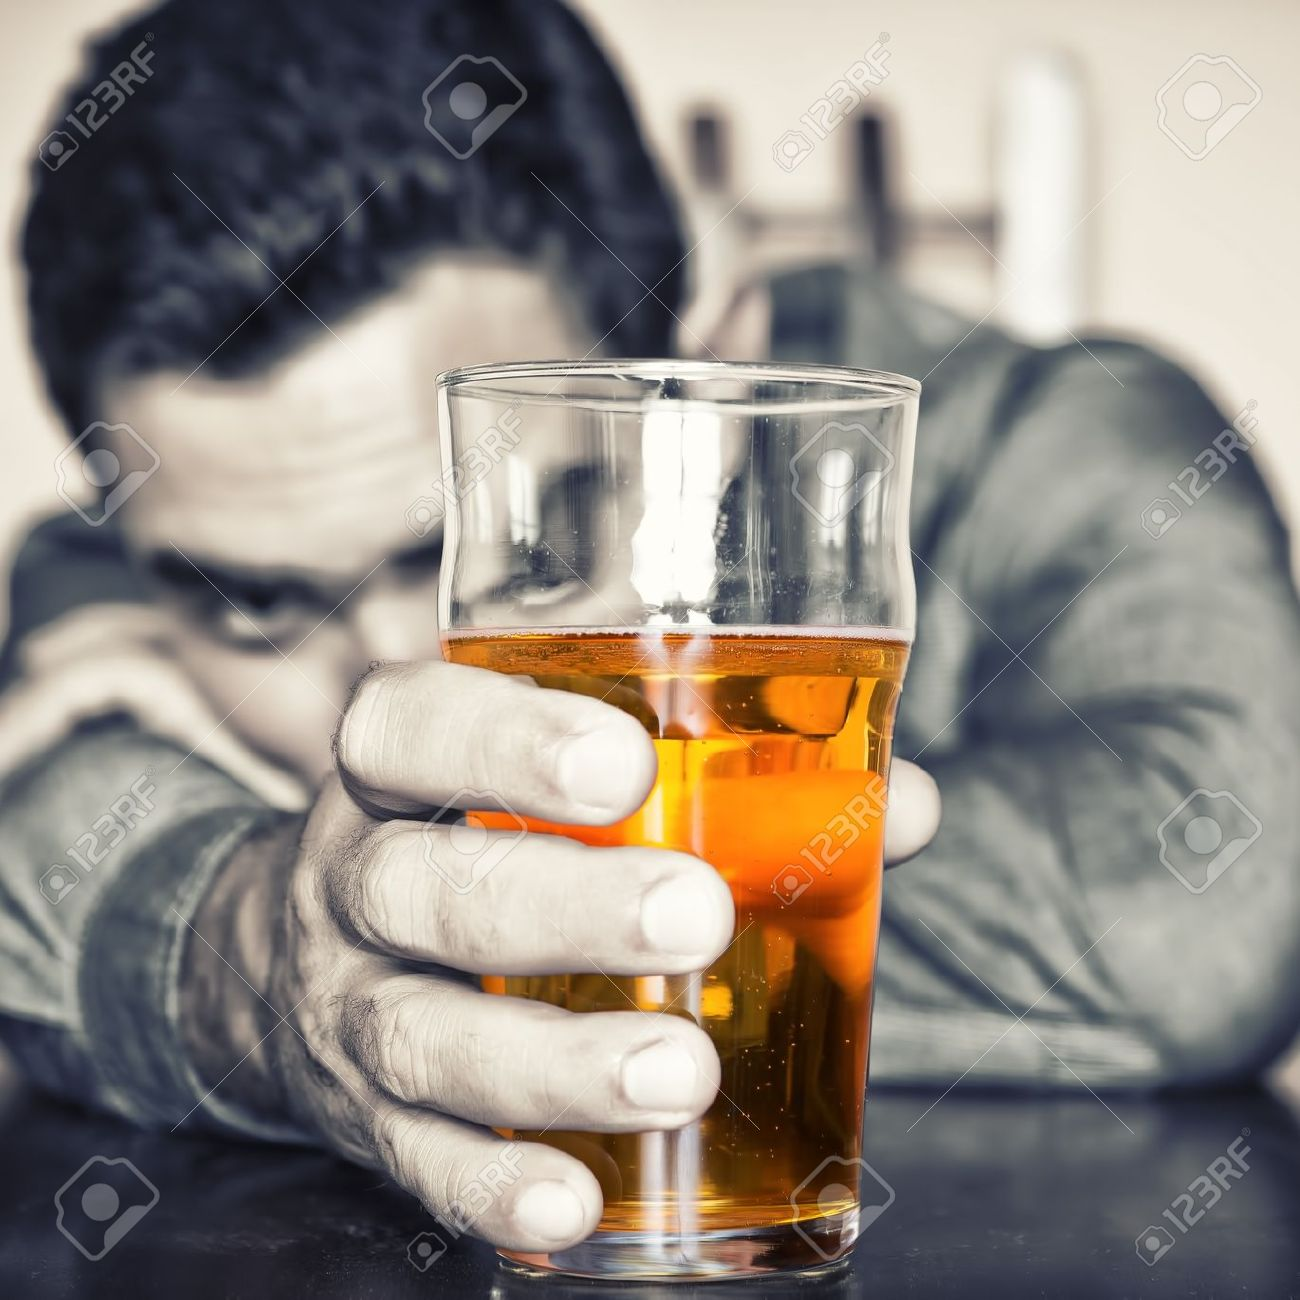 Grune image of a drunk man holding a glass of beer Stock Photo - 20330630